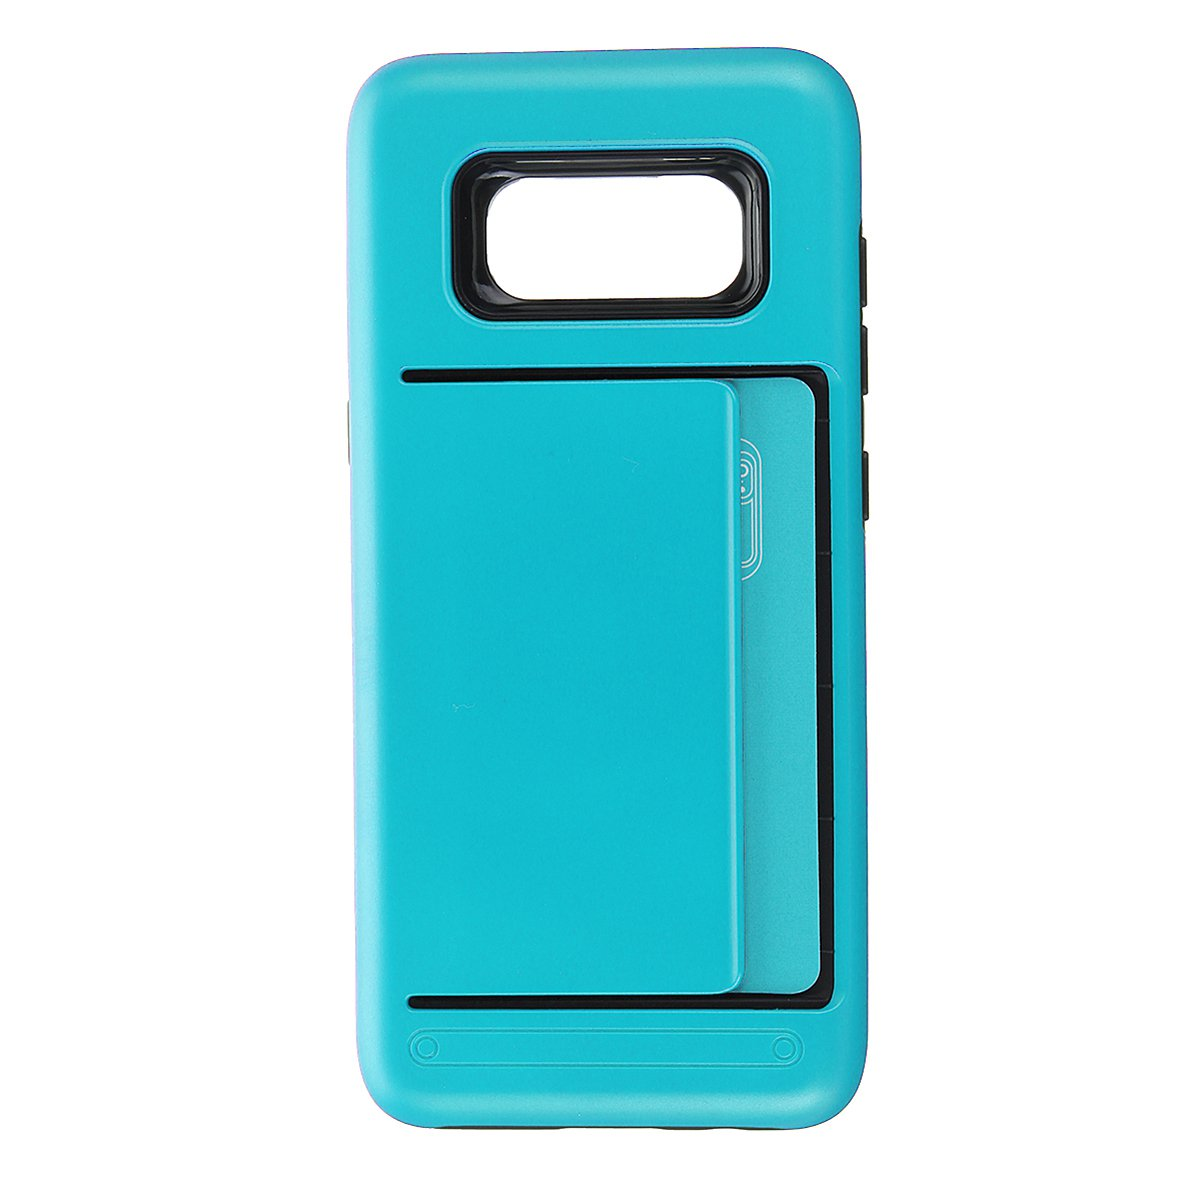 TPU+PC Hybrid Card-slots Shockproof Armor Cover Case For Samsung Galaxy S8 Plus:Blue